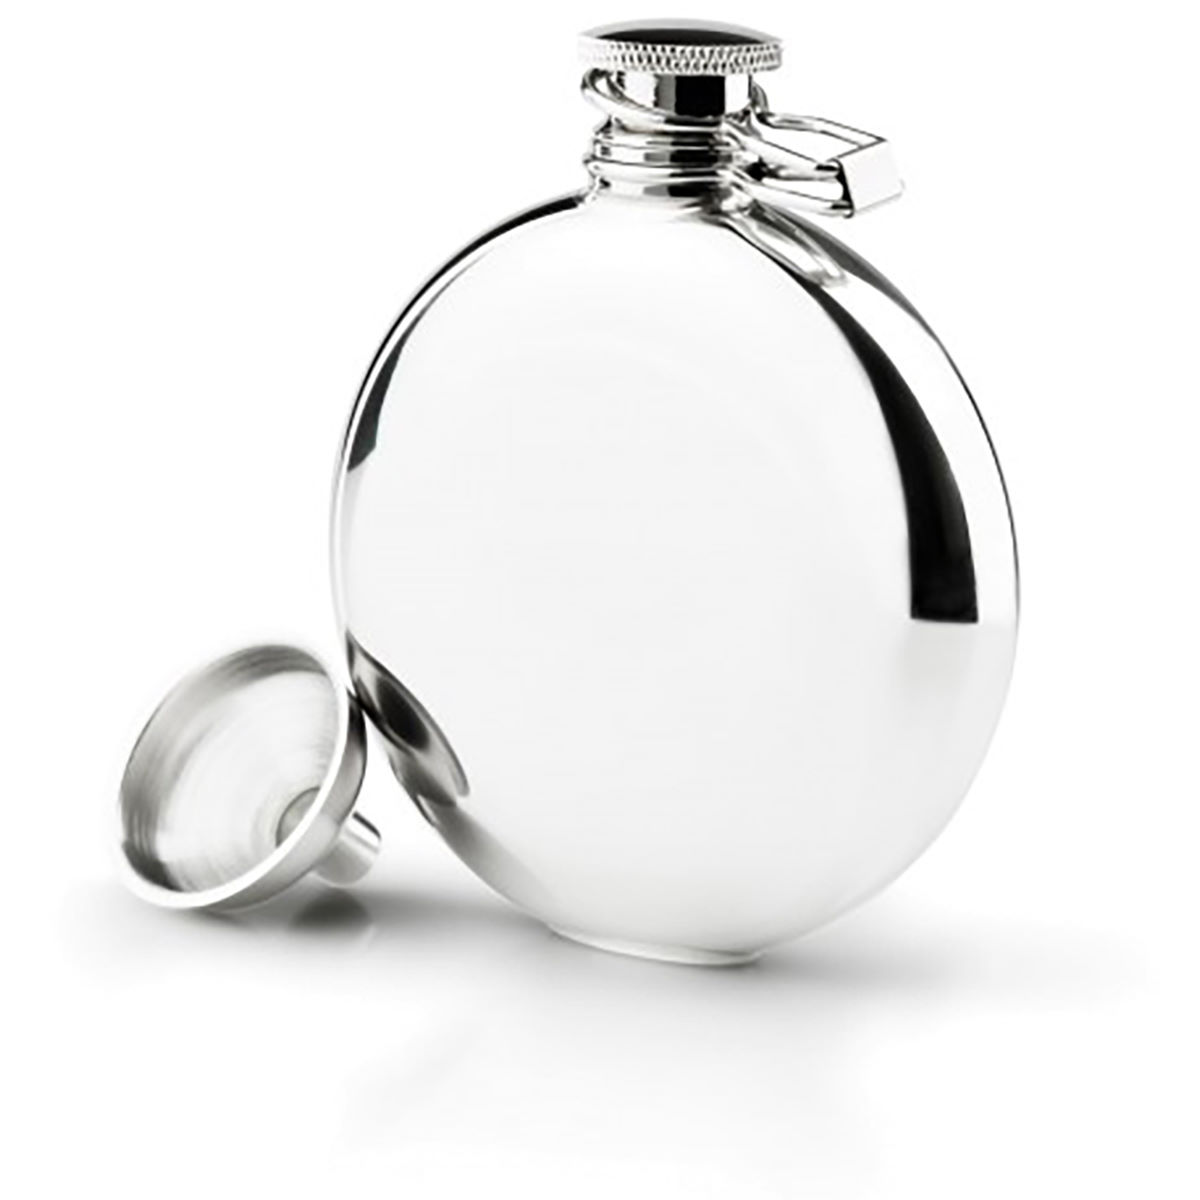 GSI Outdoors GSI Outdoors Glacier Stainless 5 fl oz Classic Flask   Flasks